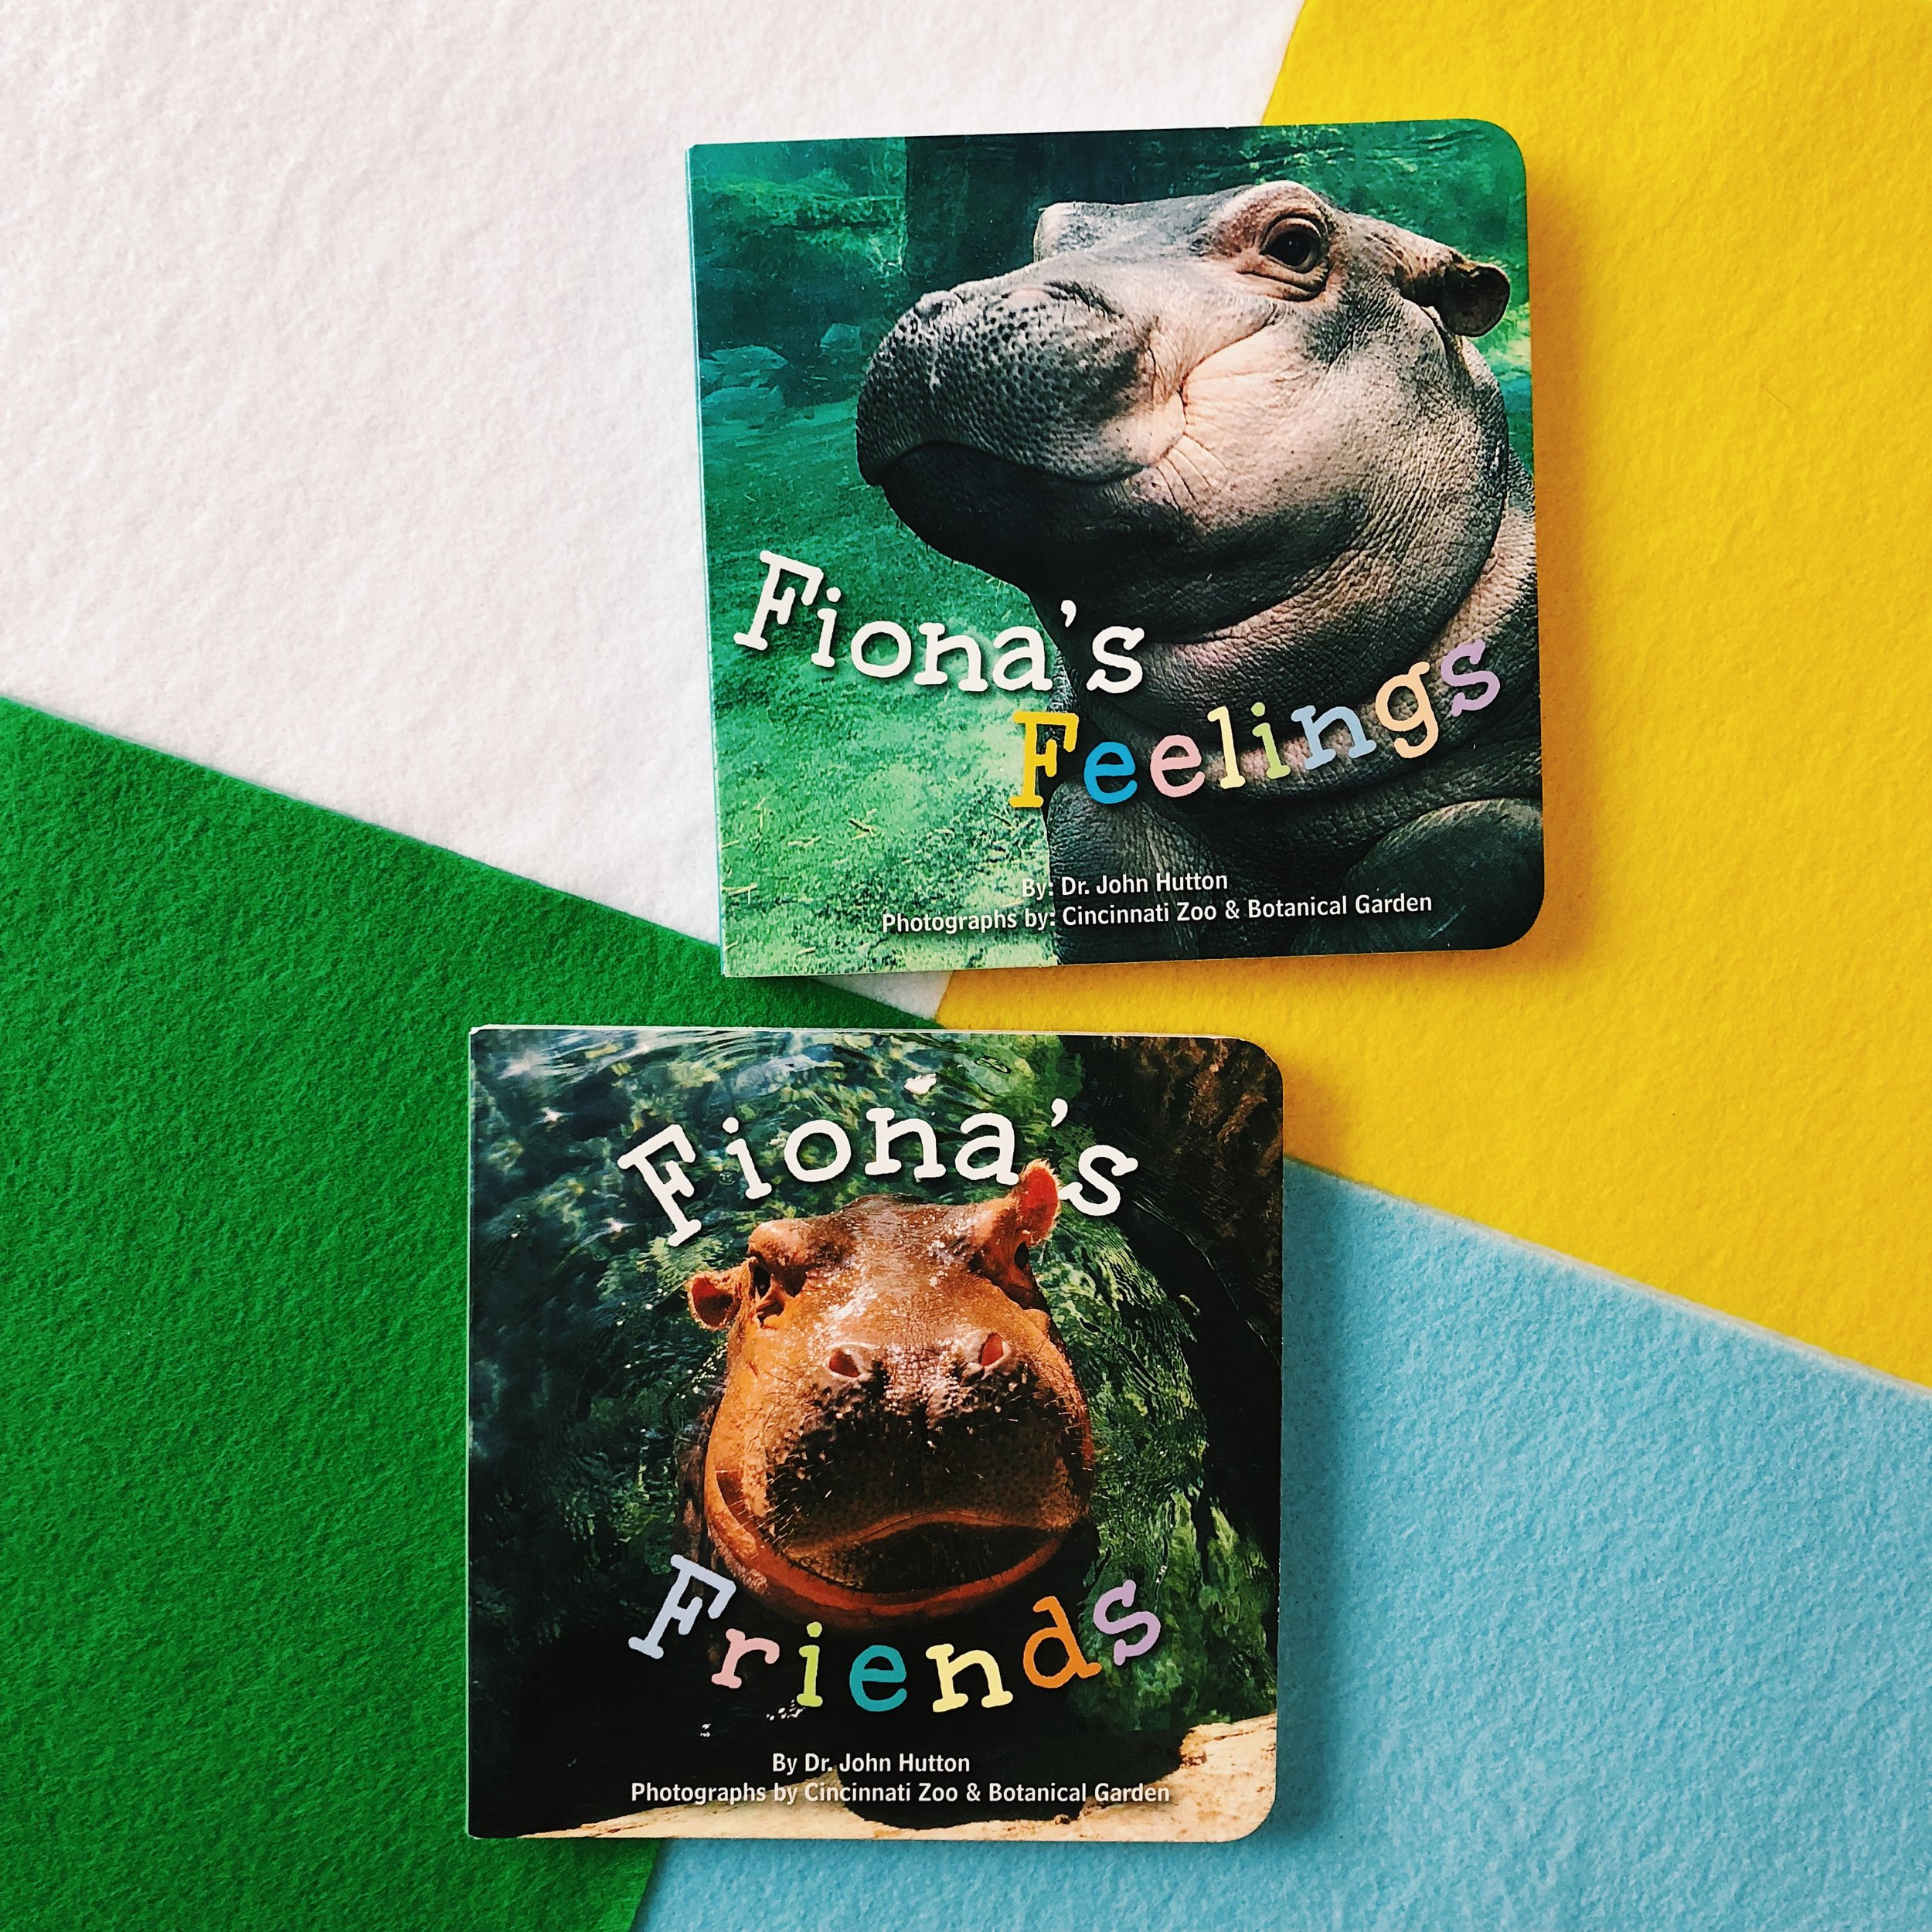 Fiona's Feelings and Fiona's Friends, written by Dr. John Hutton and photographs by the Cincinnati Zoo & Botanical Garden